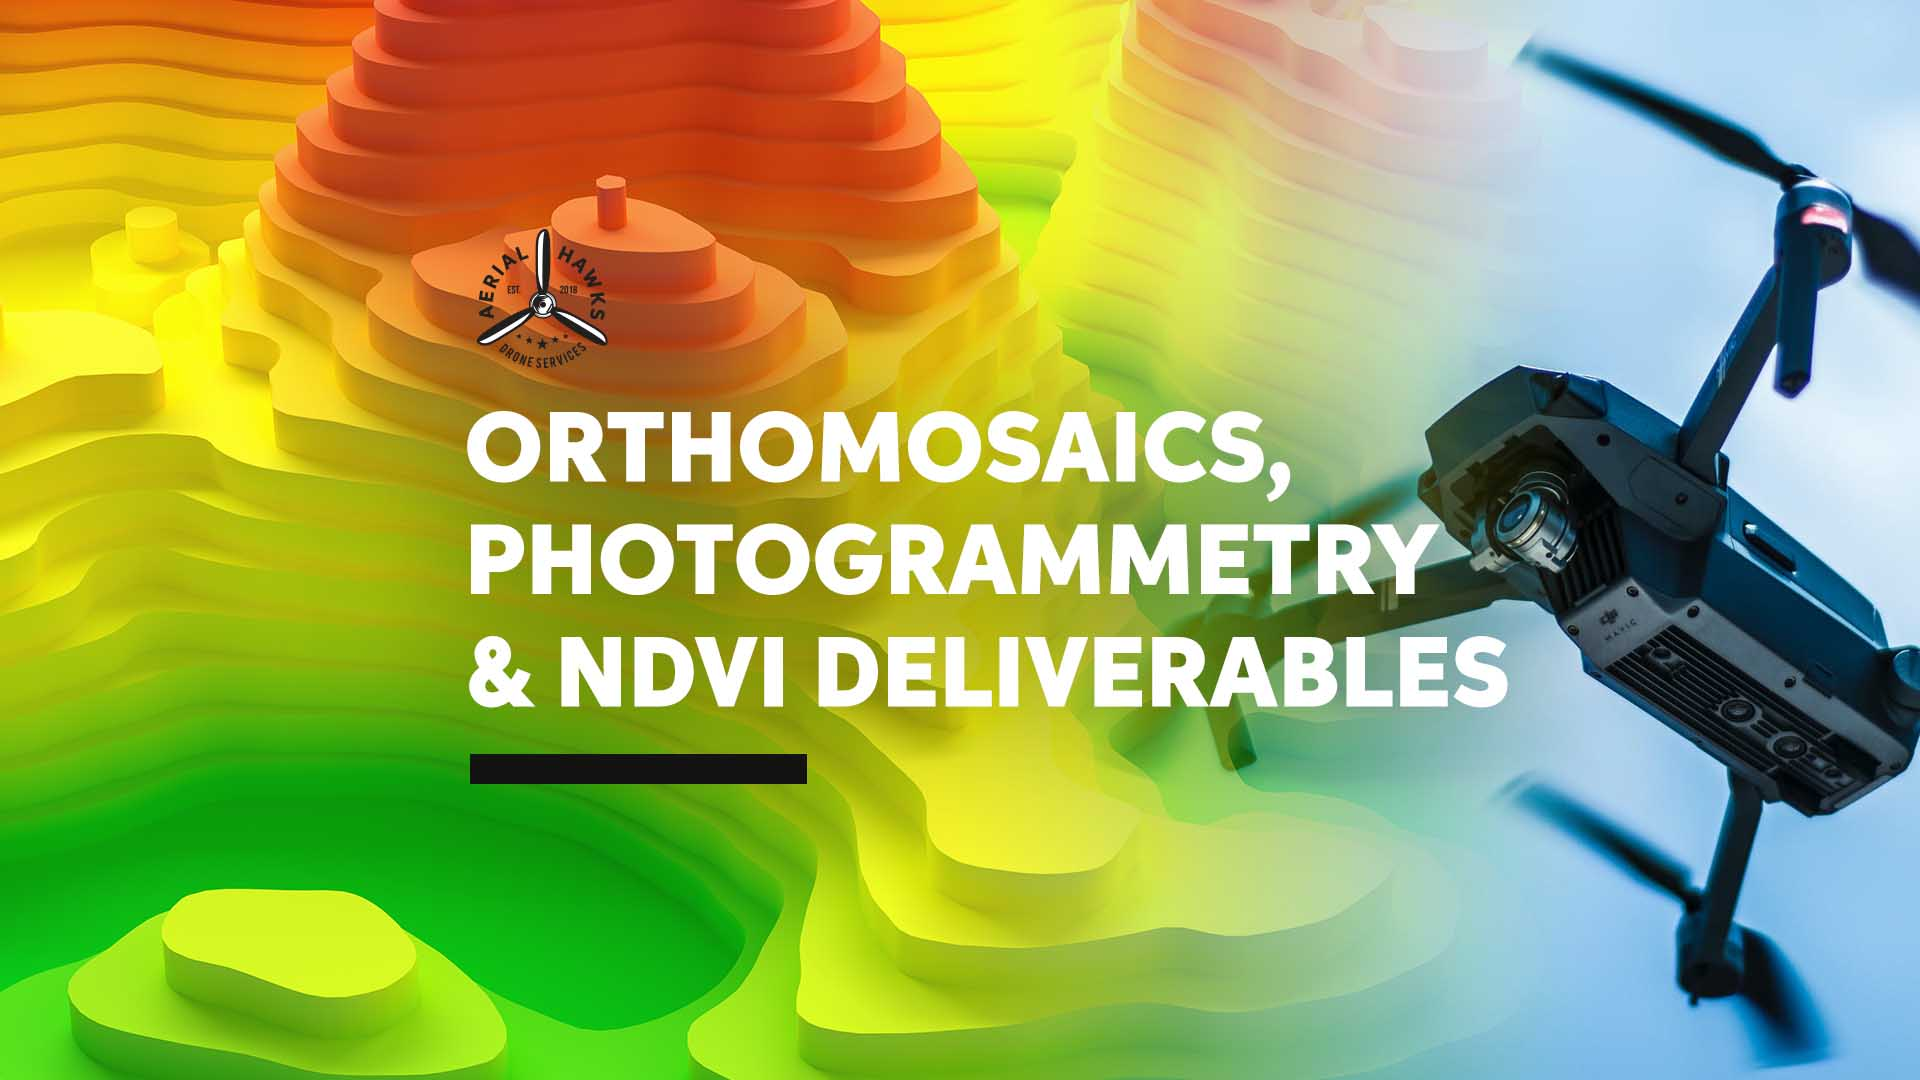 ORTHOMOSAICS, PHOTOGRAMMETRY & NDVI DELIVERABLES